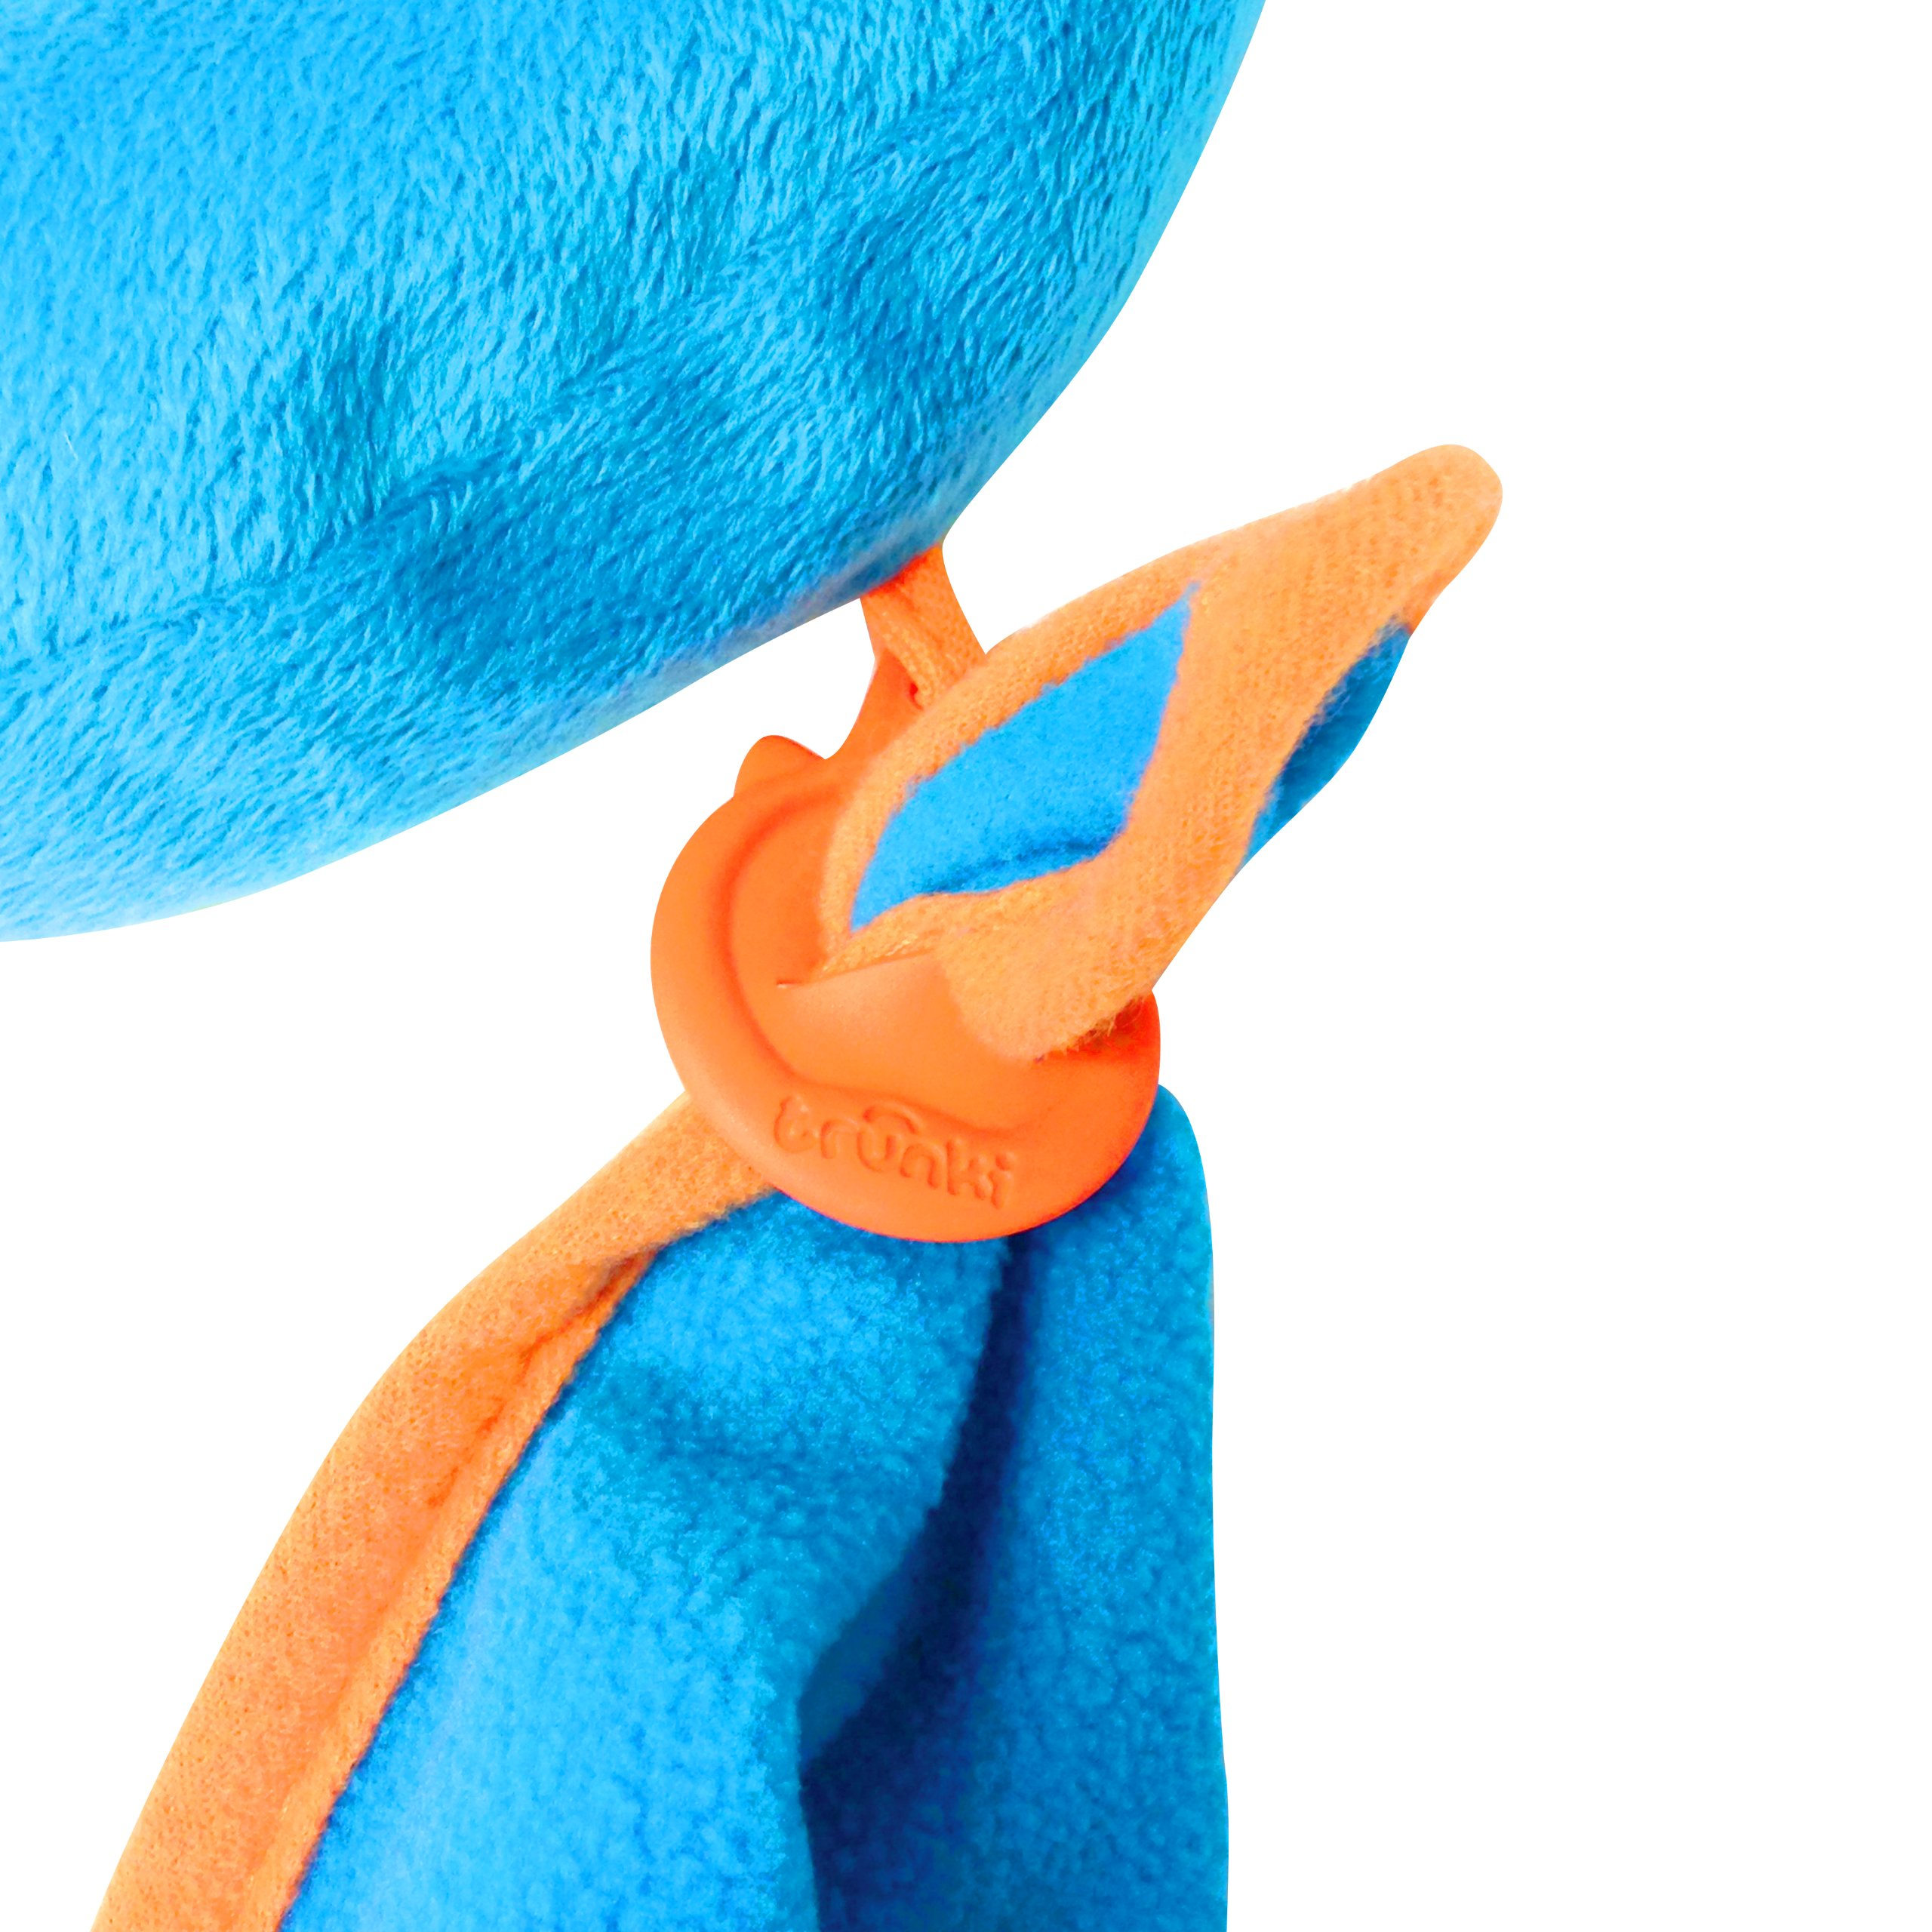 Trunki Kid's Travel Neck Pillow with Magnetic Child's Chin Support - Yondi Small Bert (Blue) by Trunki (Image #3)